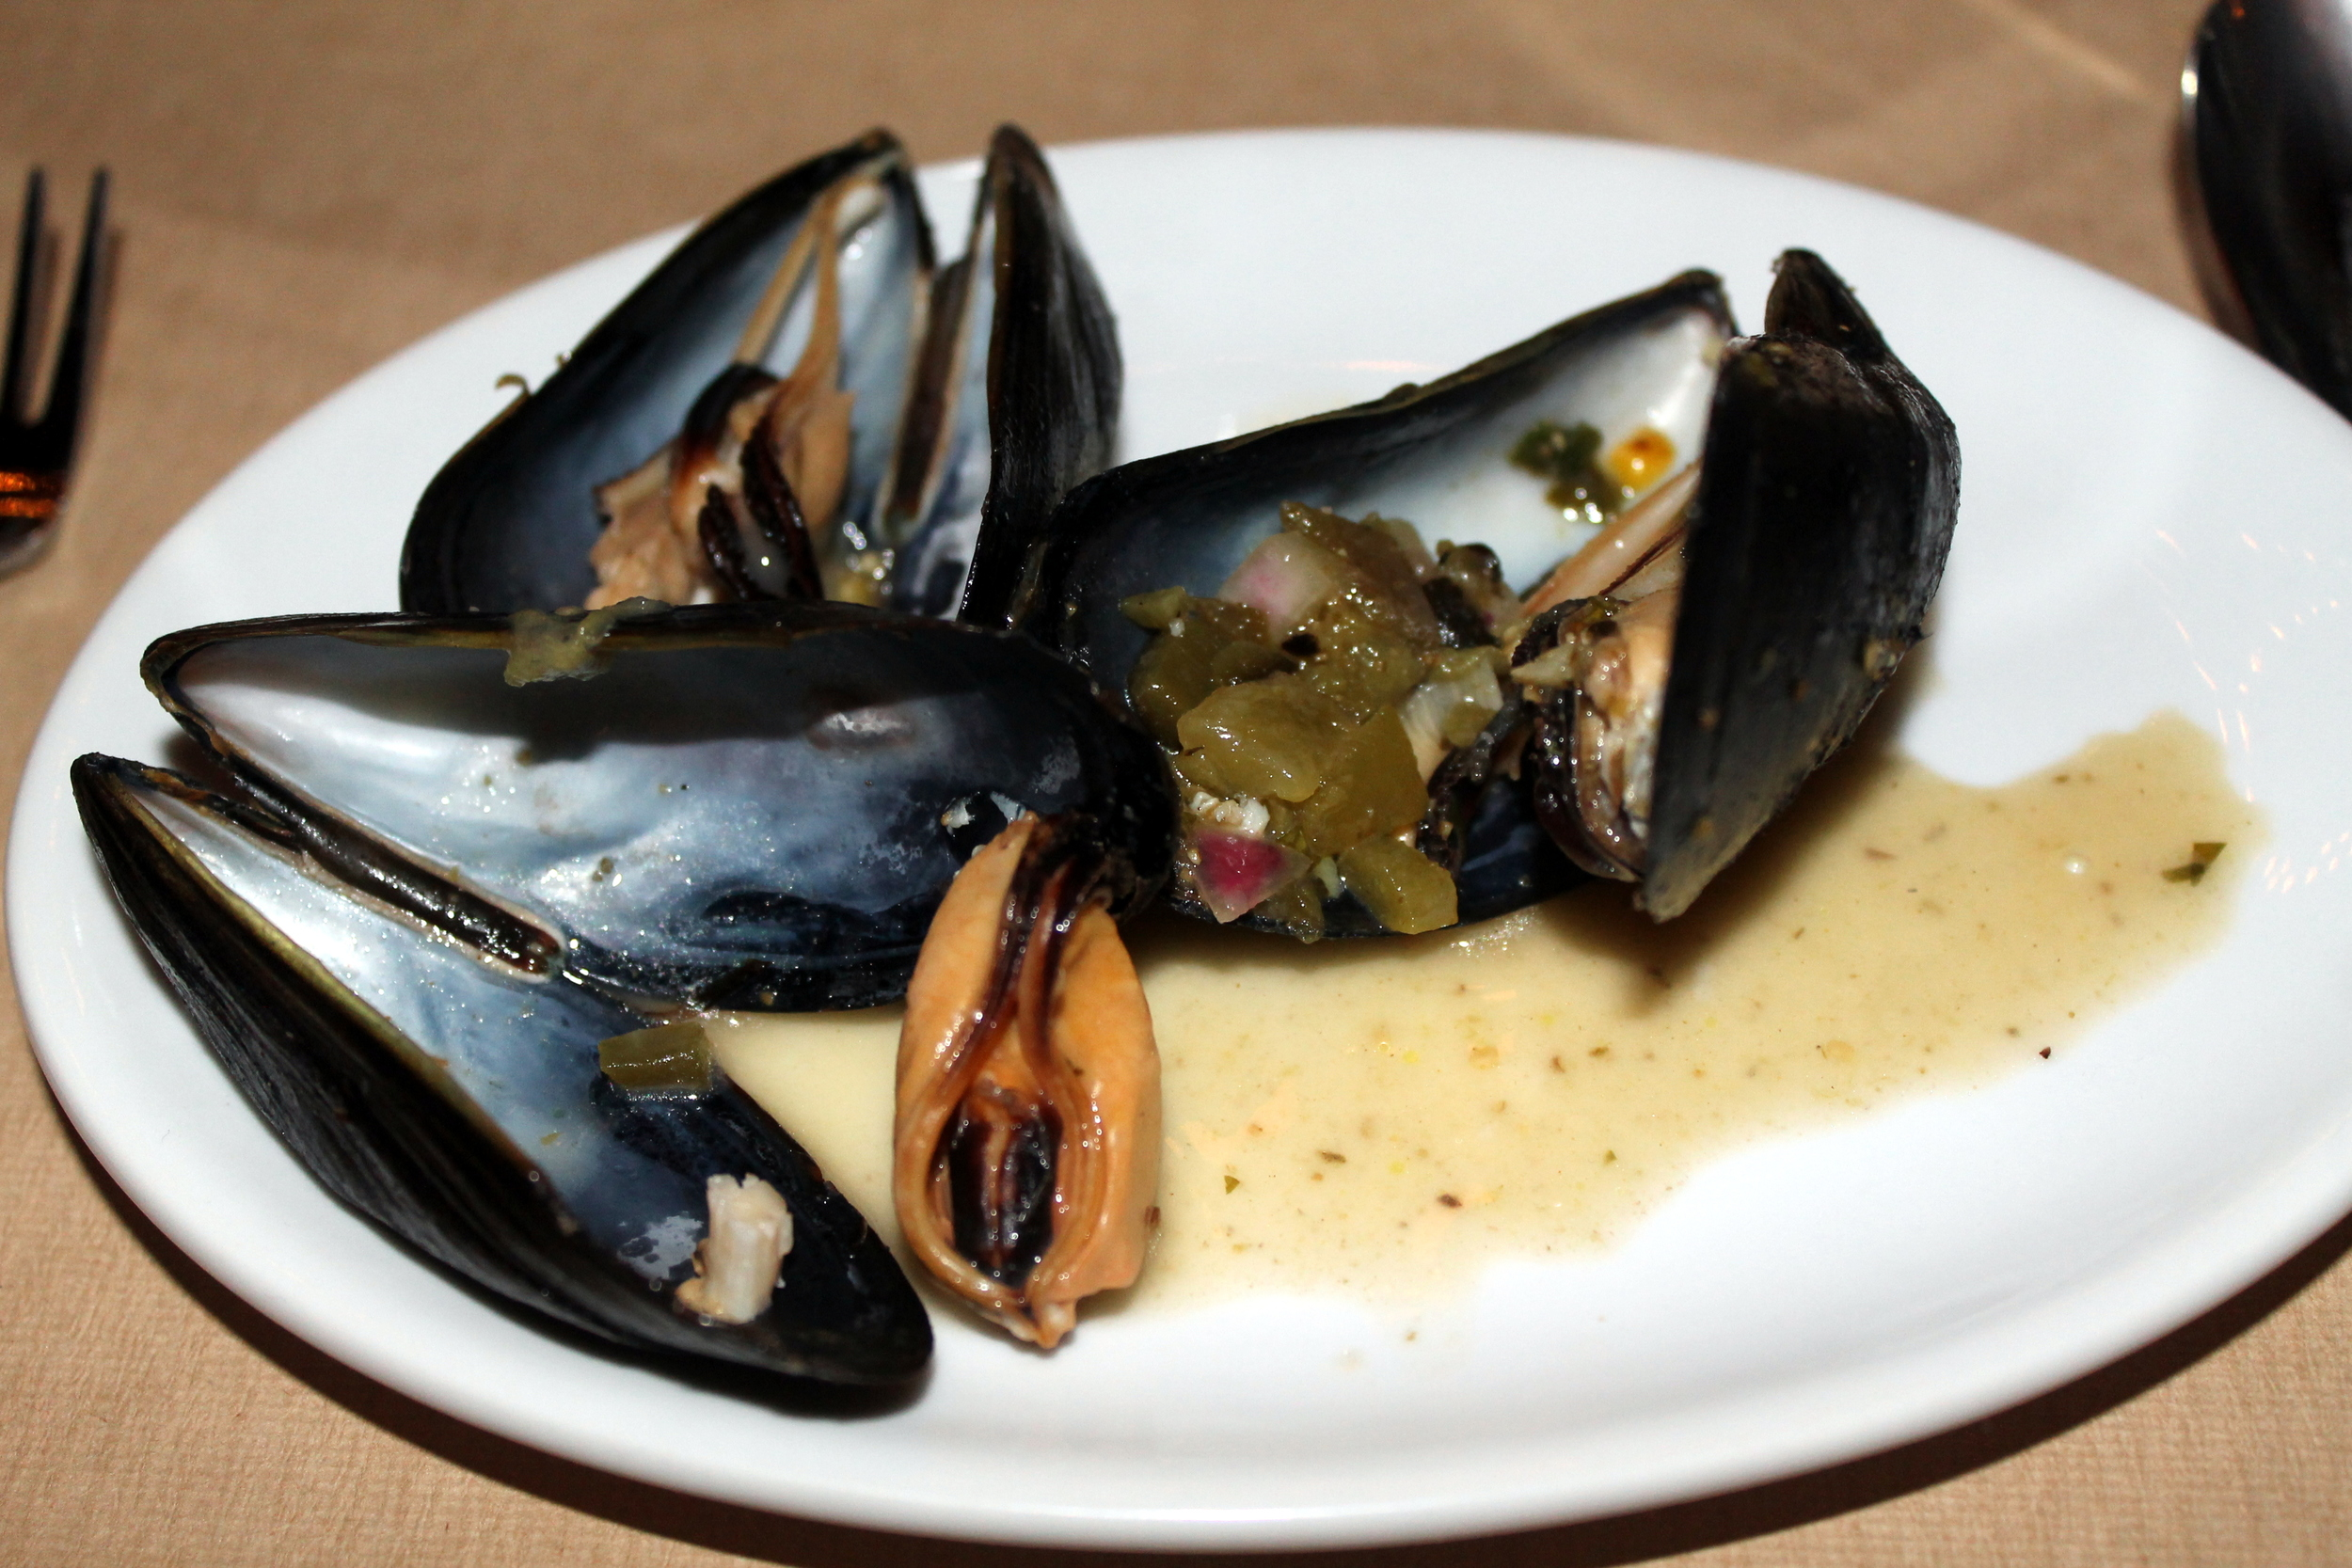 Saltaire Oyster Bar and Fish House :: The Fire Roasted Poblano Mussels with Tomato Salsa, Chorizo and Basil